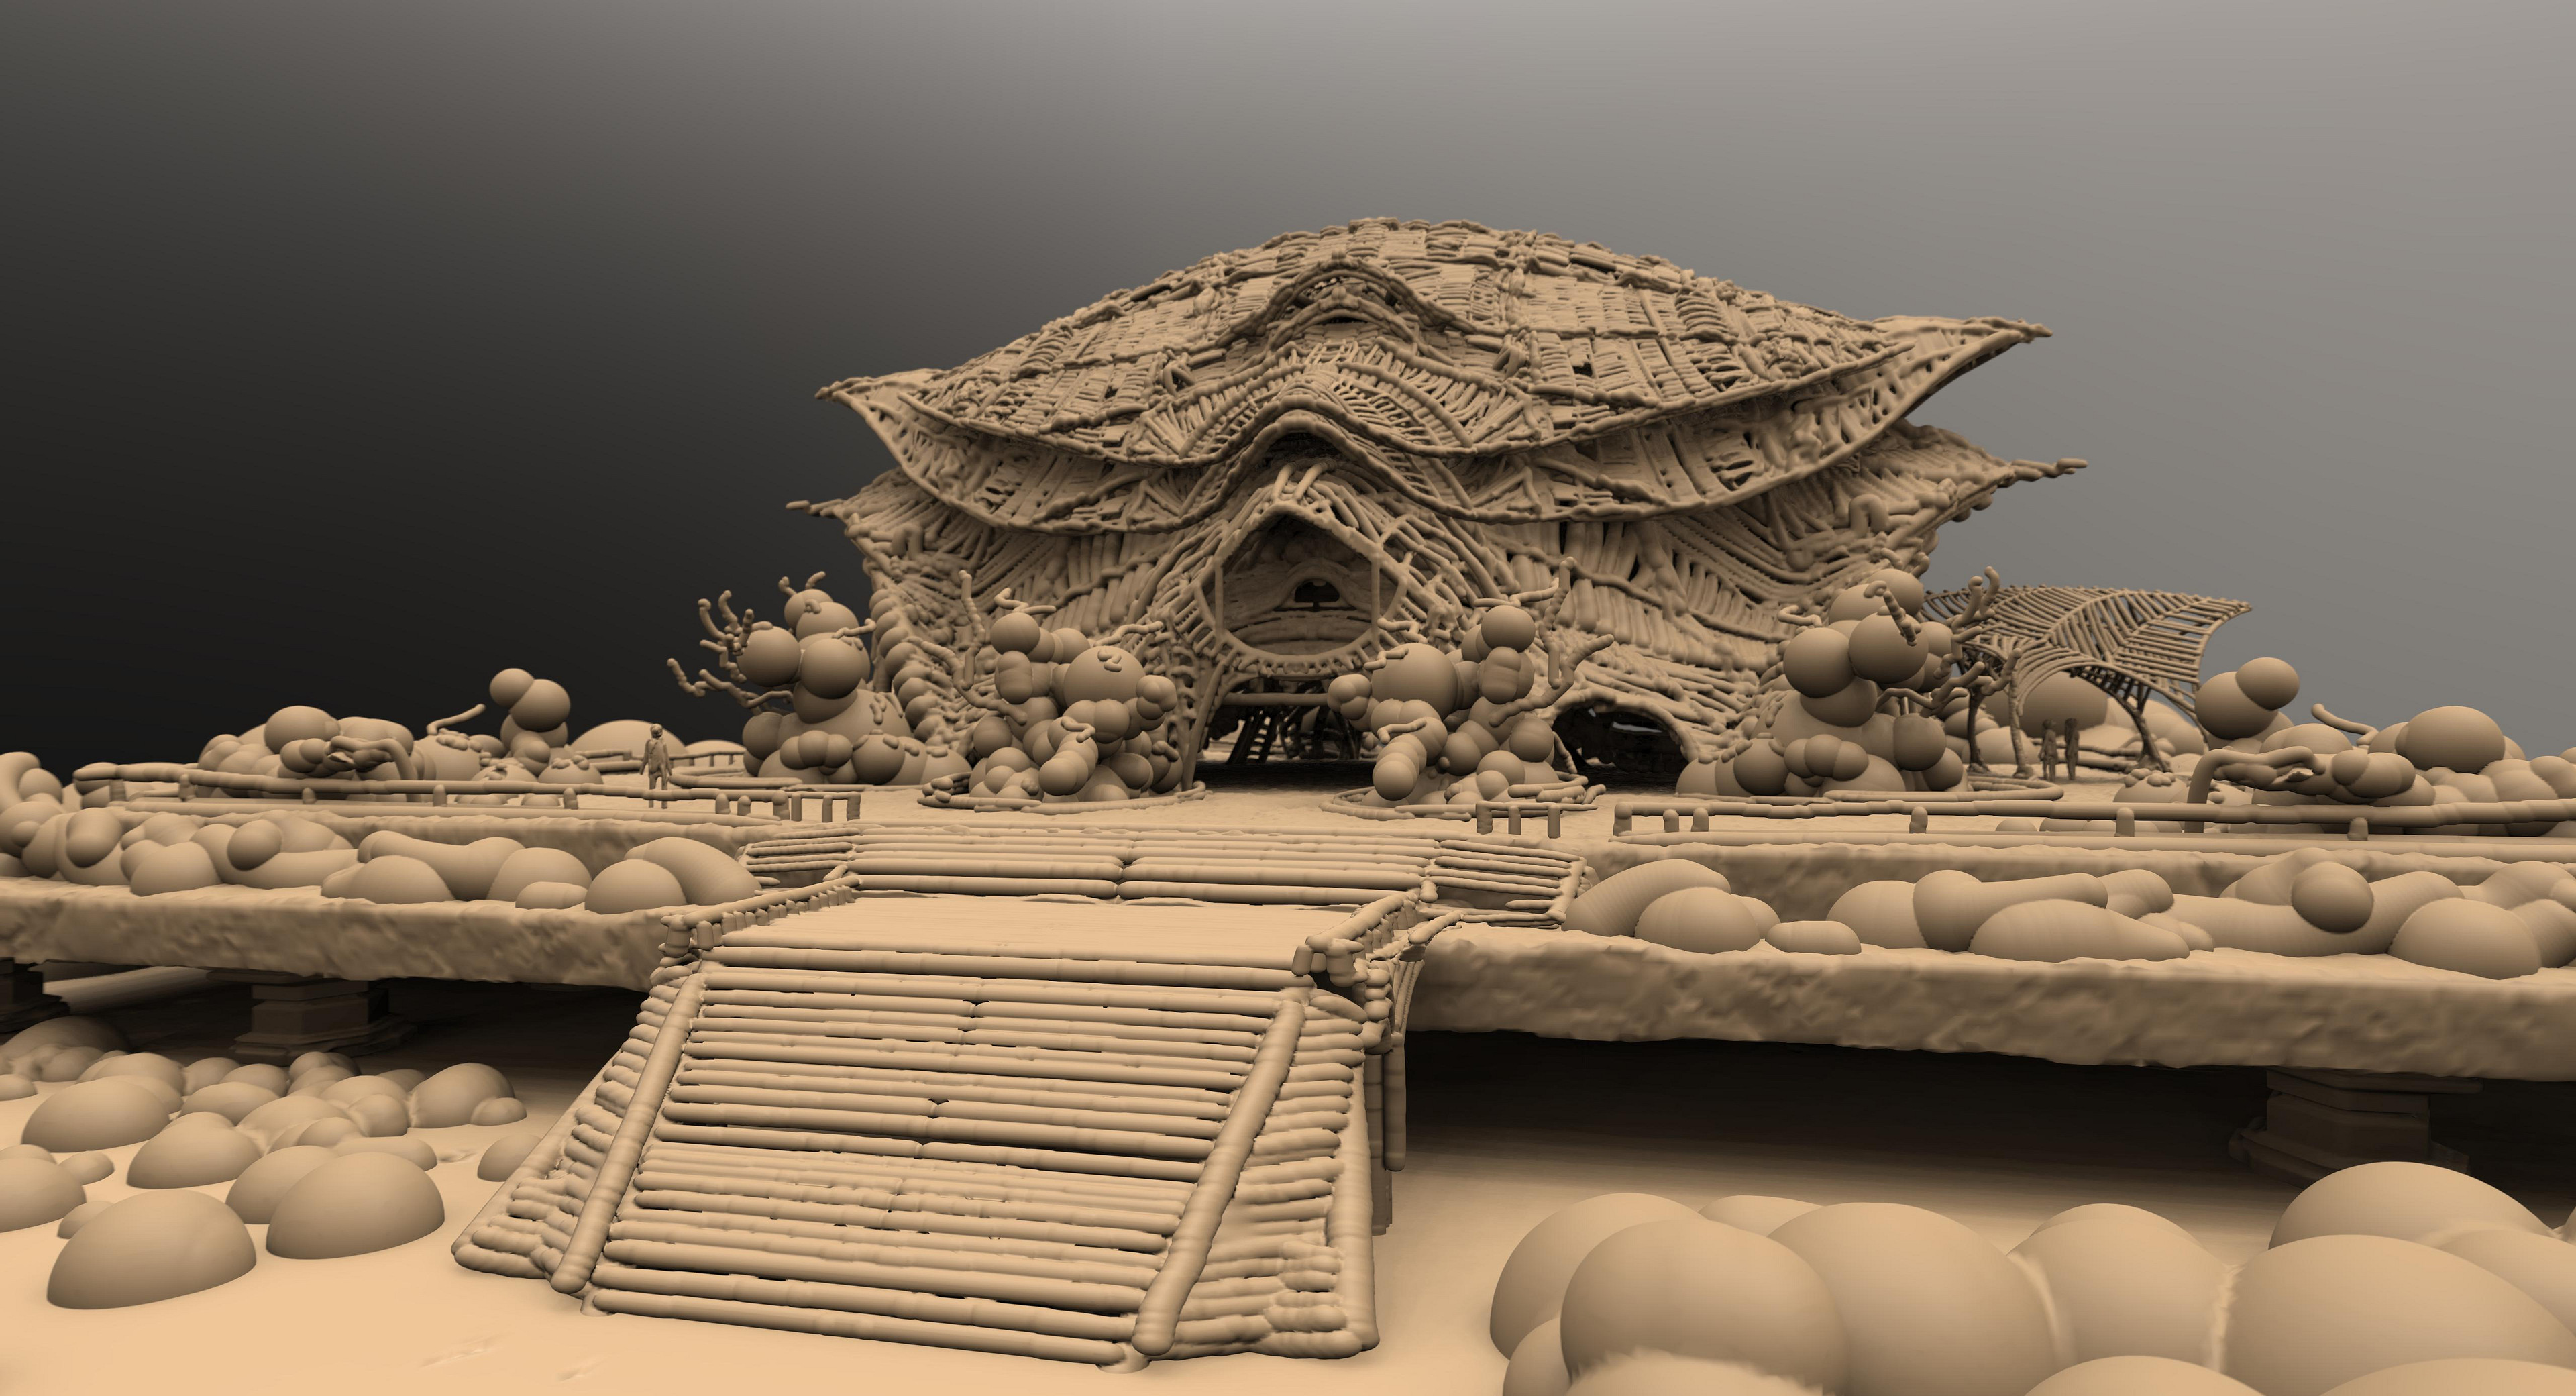 Early 3D model that influenced certain aspects of the final design